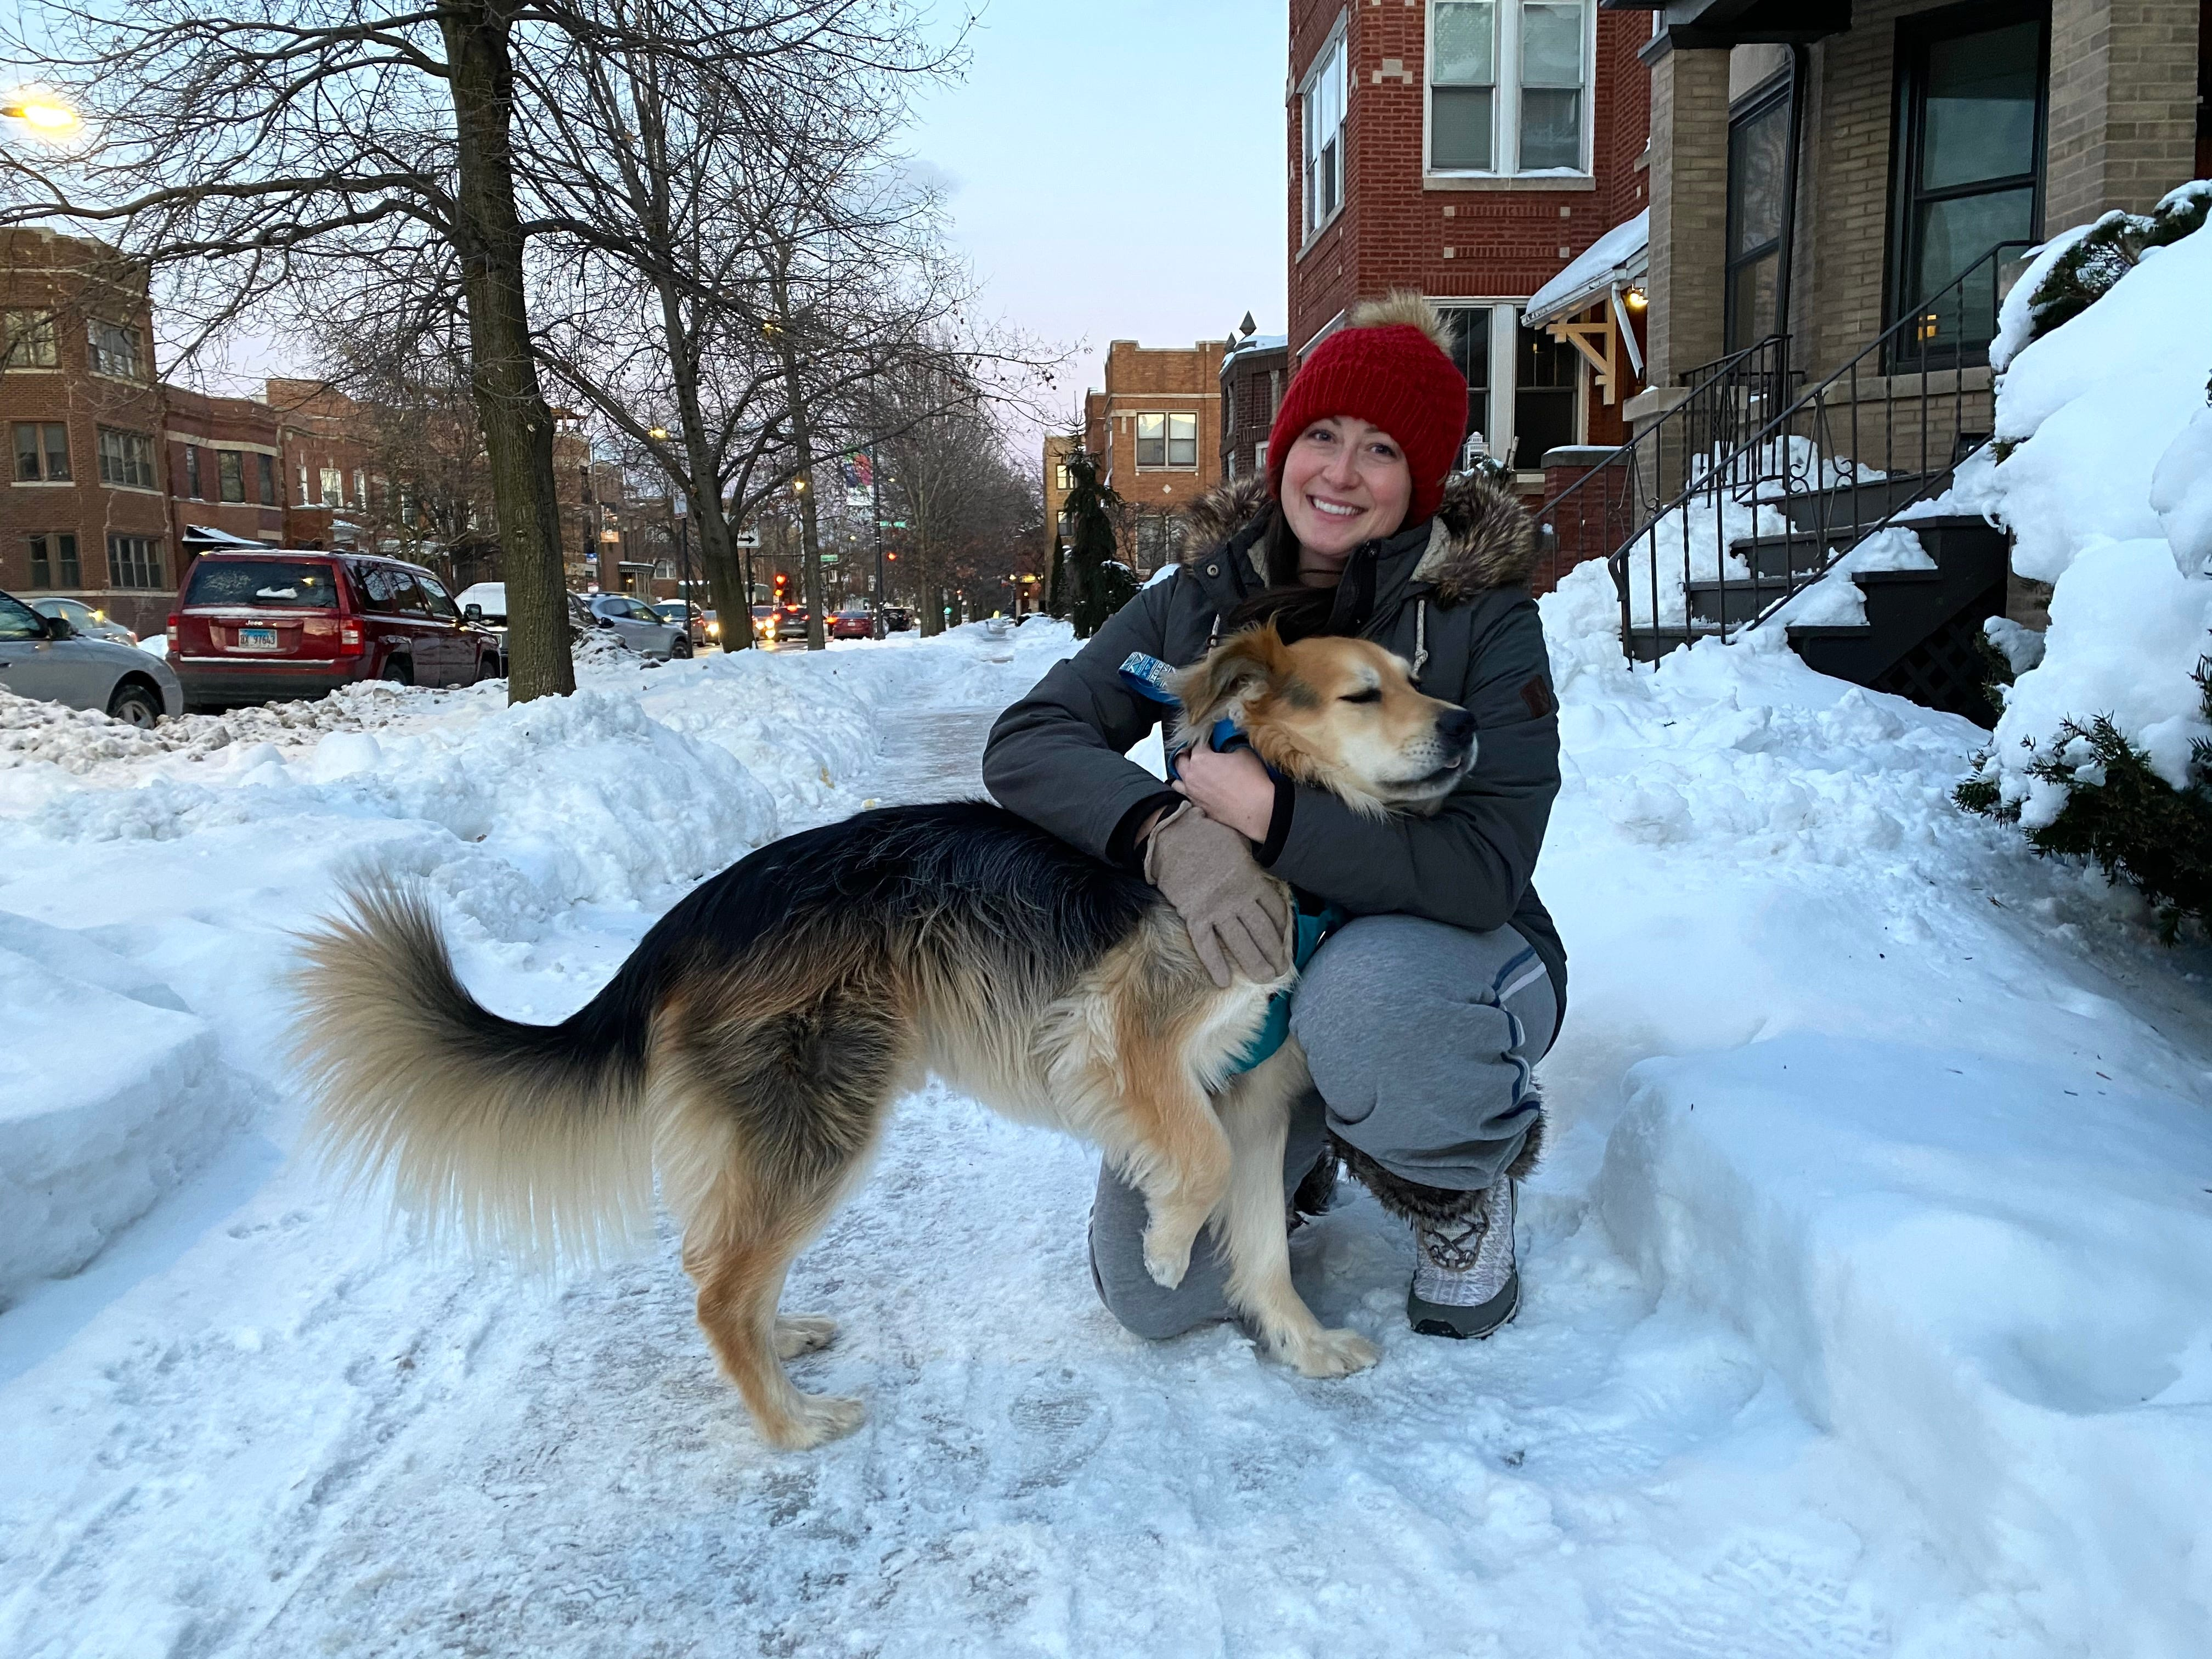 Former pharmacist Marissa Hampton, 35, walks her dog, Renly, in Chicago's North Center neighborhood Feb. 5. Hampton says she has administered dozens of shots for other viruses and plans to get a COVID-19 vaccine as soon as possible.